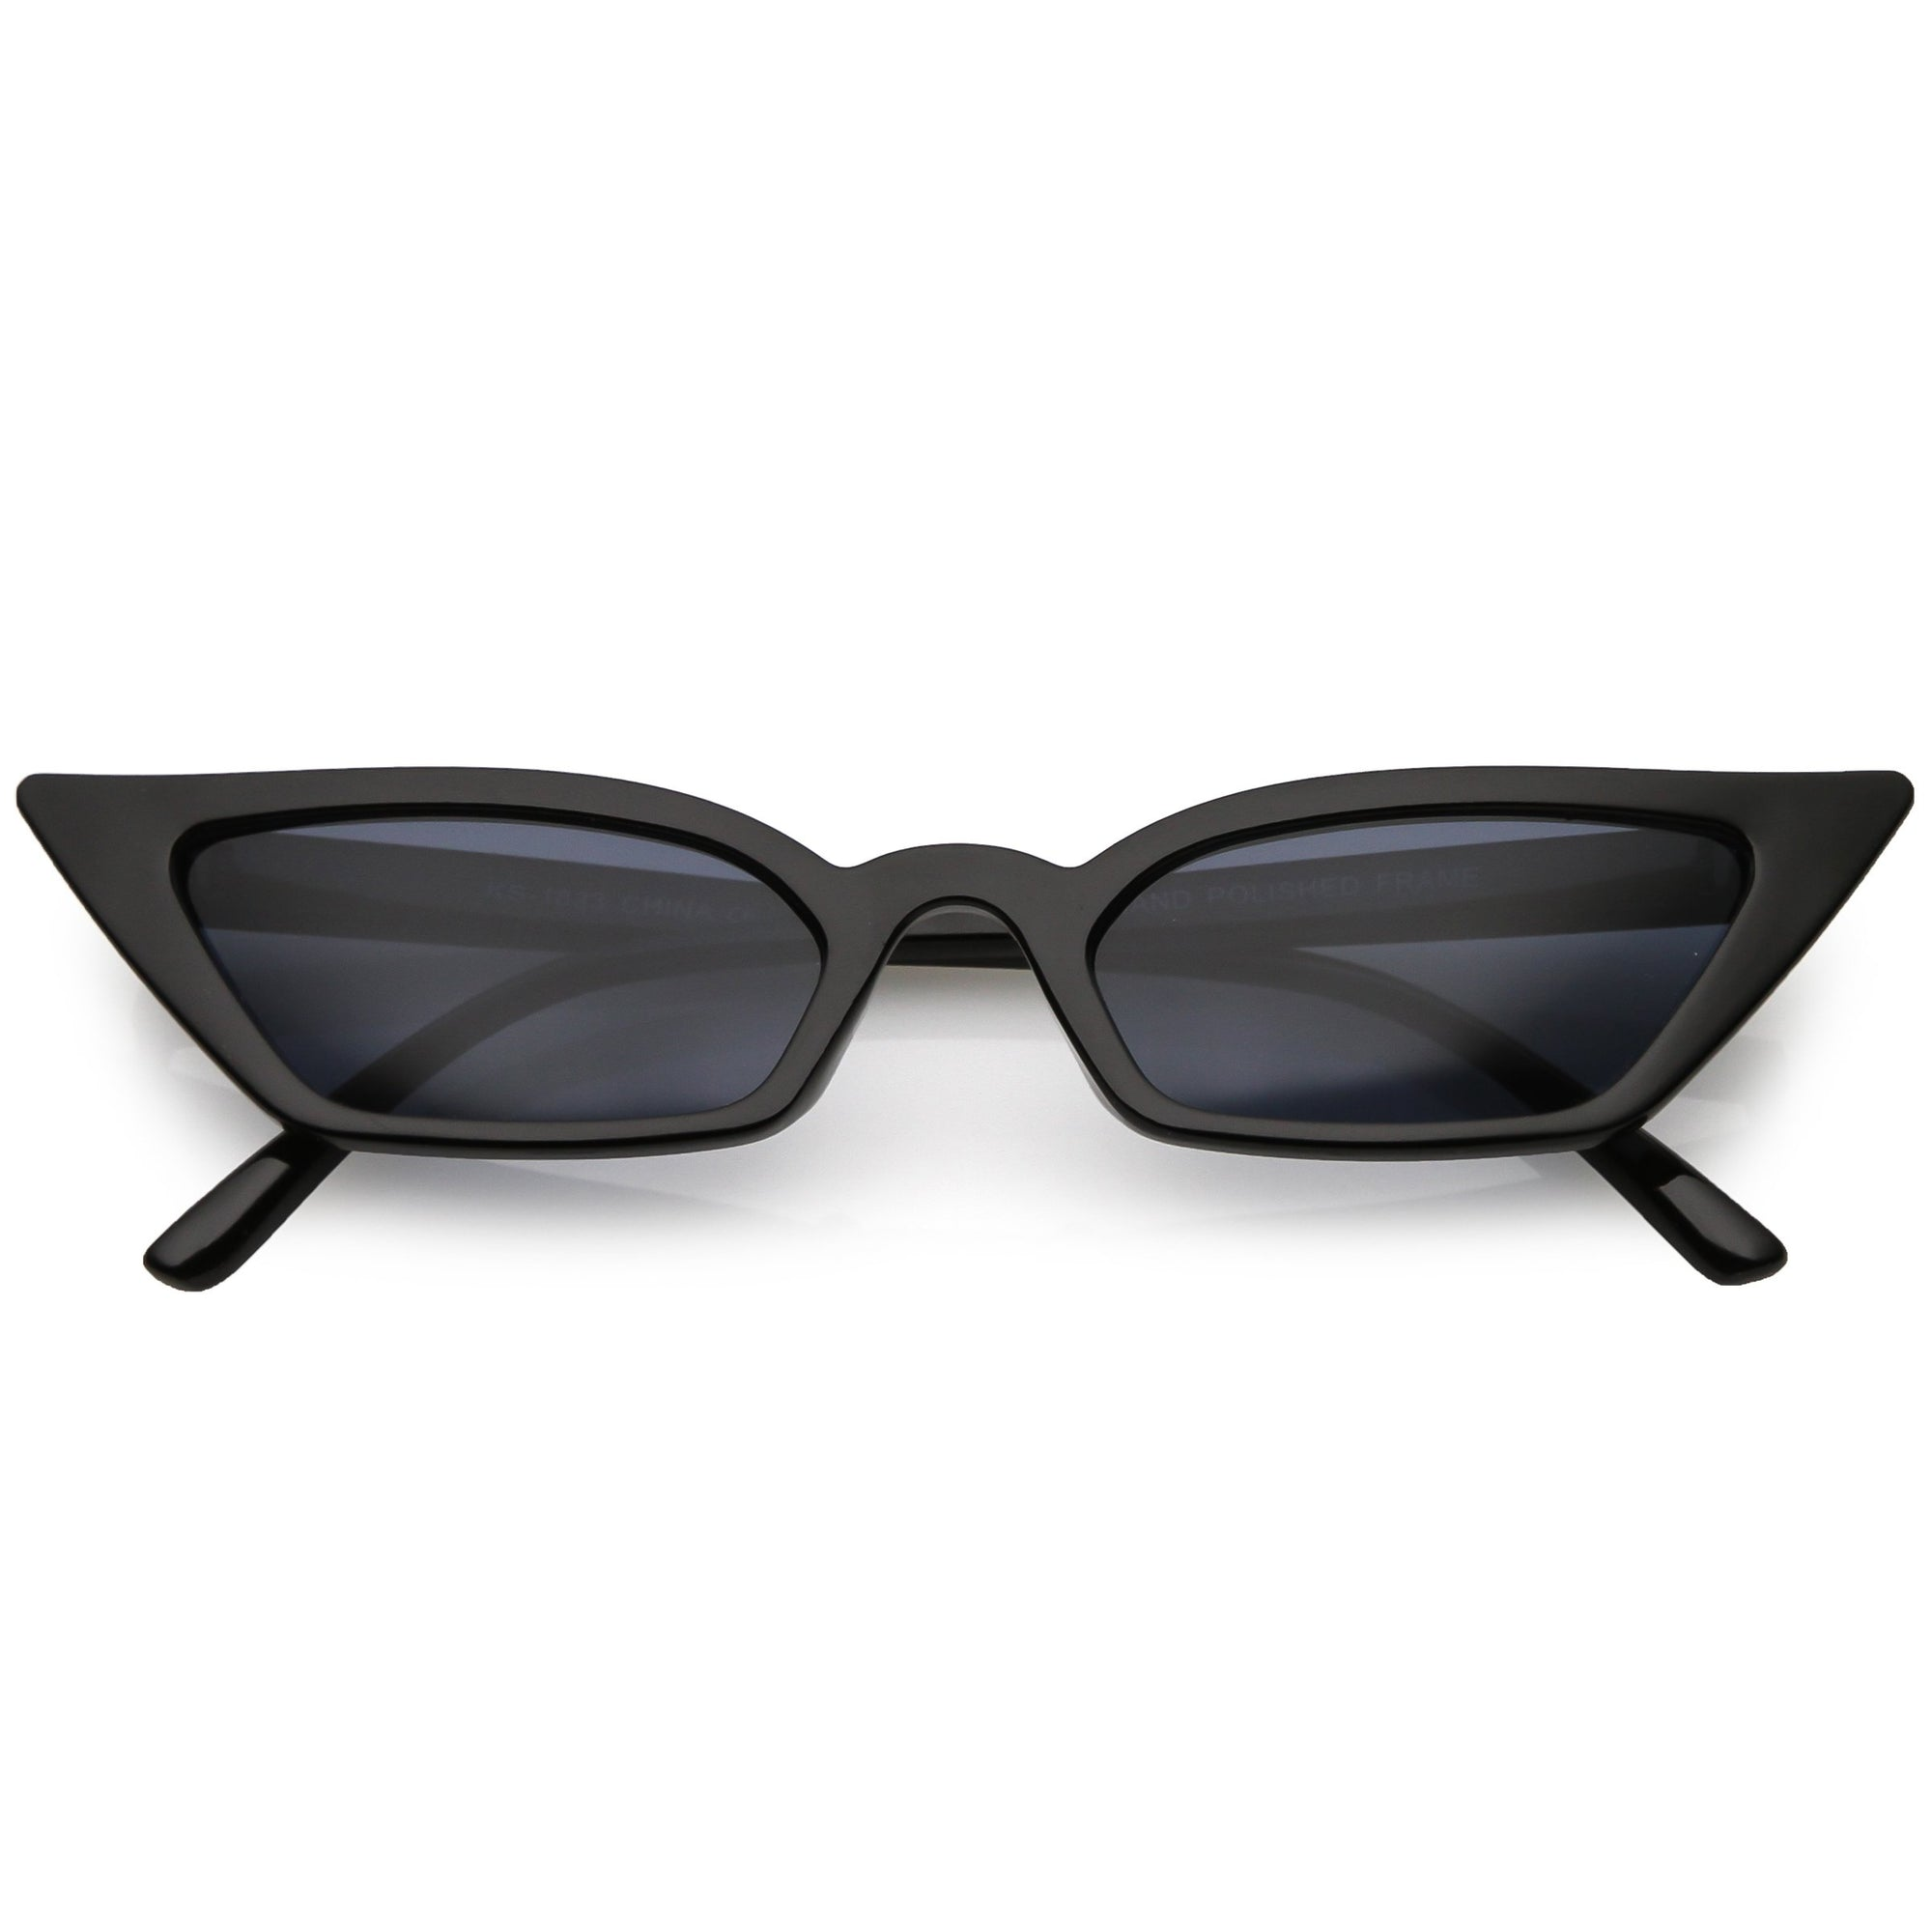 Women's 90's Thin Retro Pointed Cat Eye Sunglasses C571